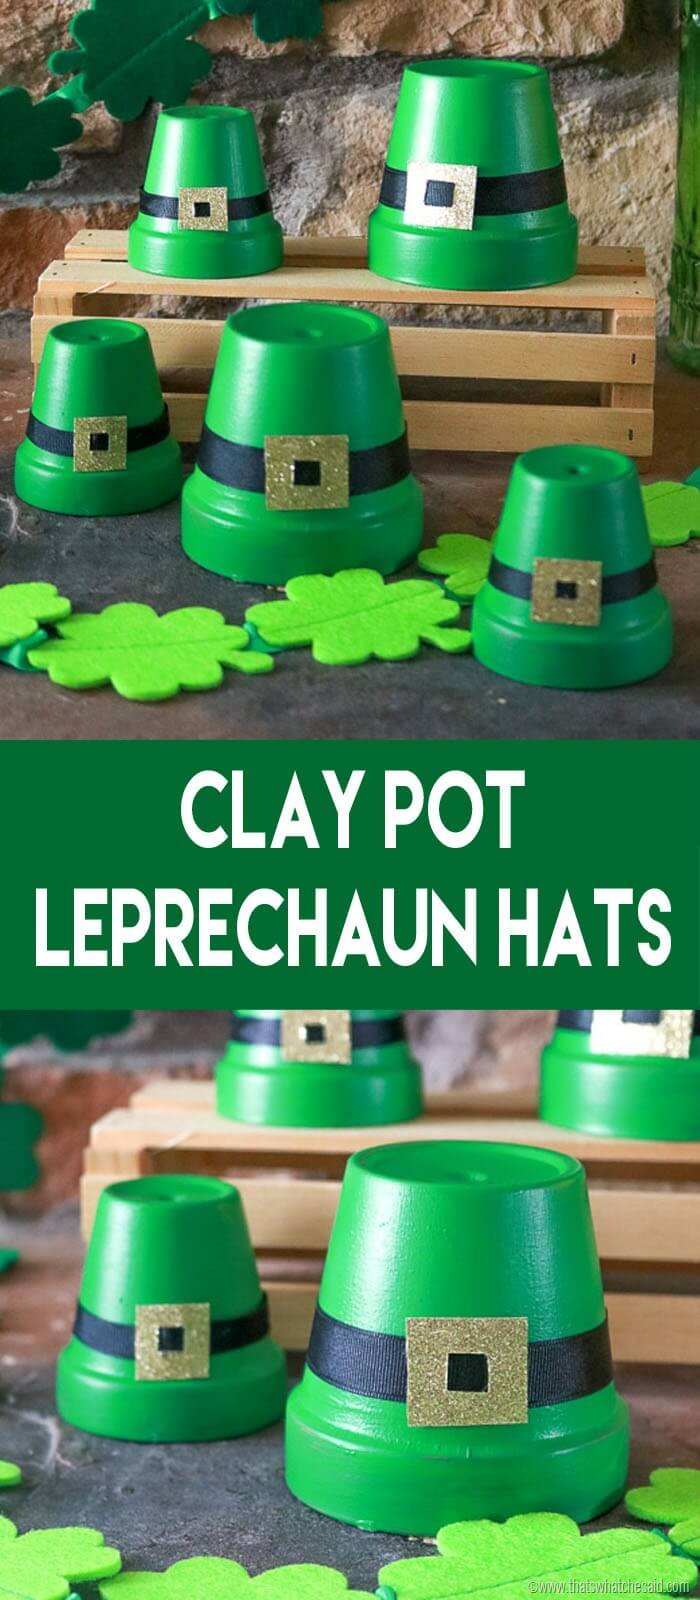 "Gardening pots turned upside down, painted green, and a black and gold buckle belt made of felt wrapped around. Text overlay with white on green background reads ""Clay Pot Leprechaun Hats."""